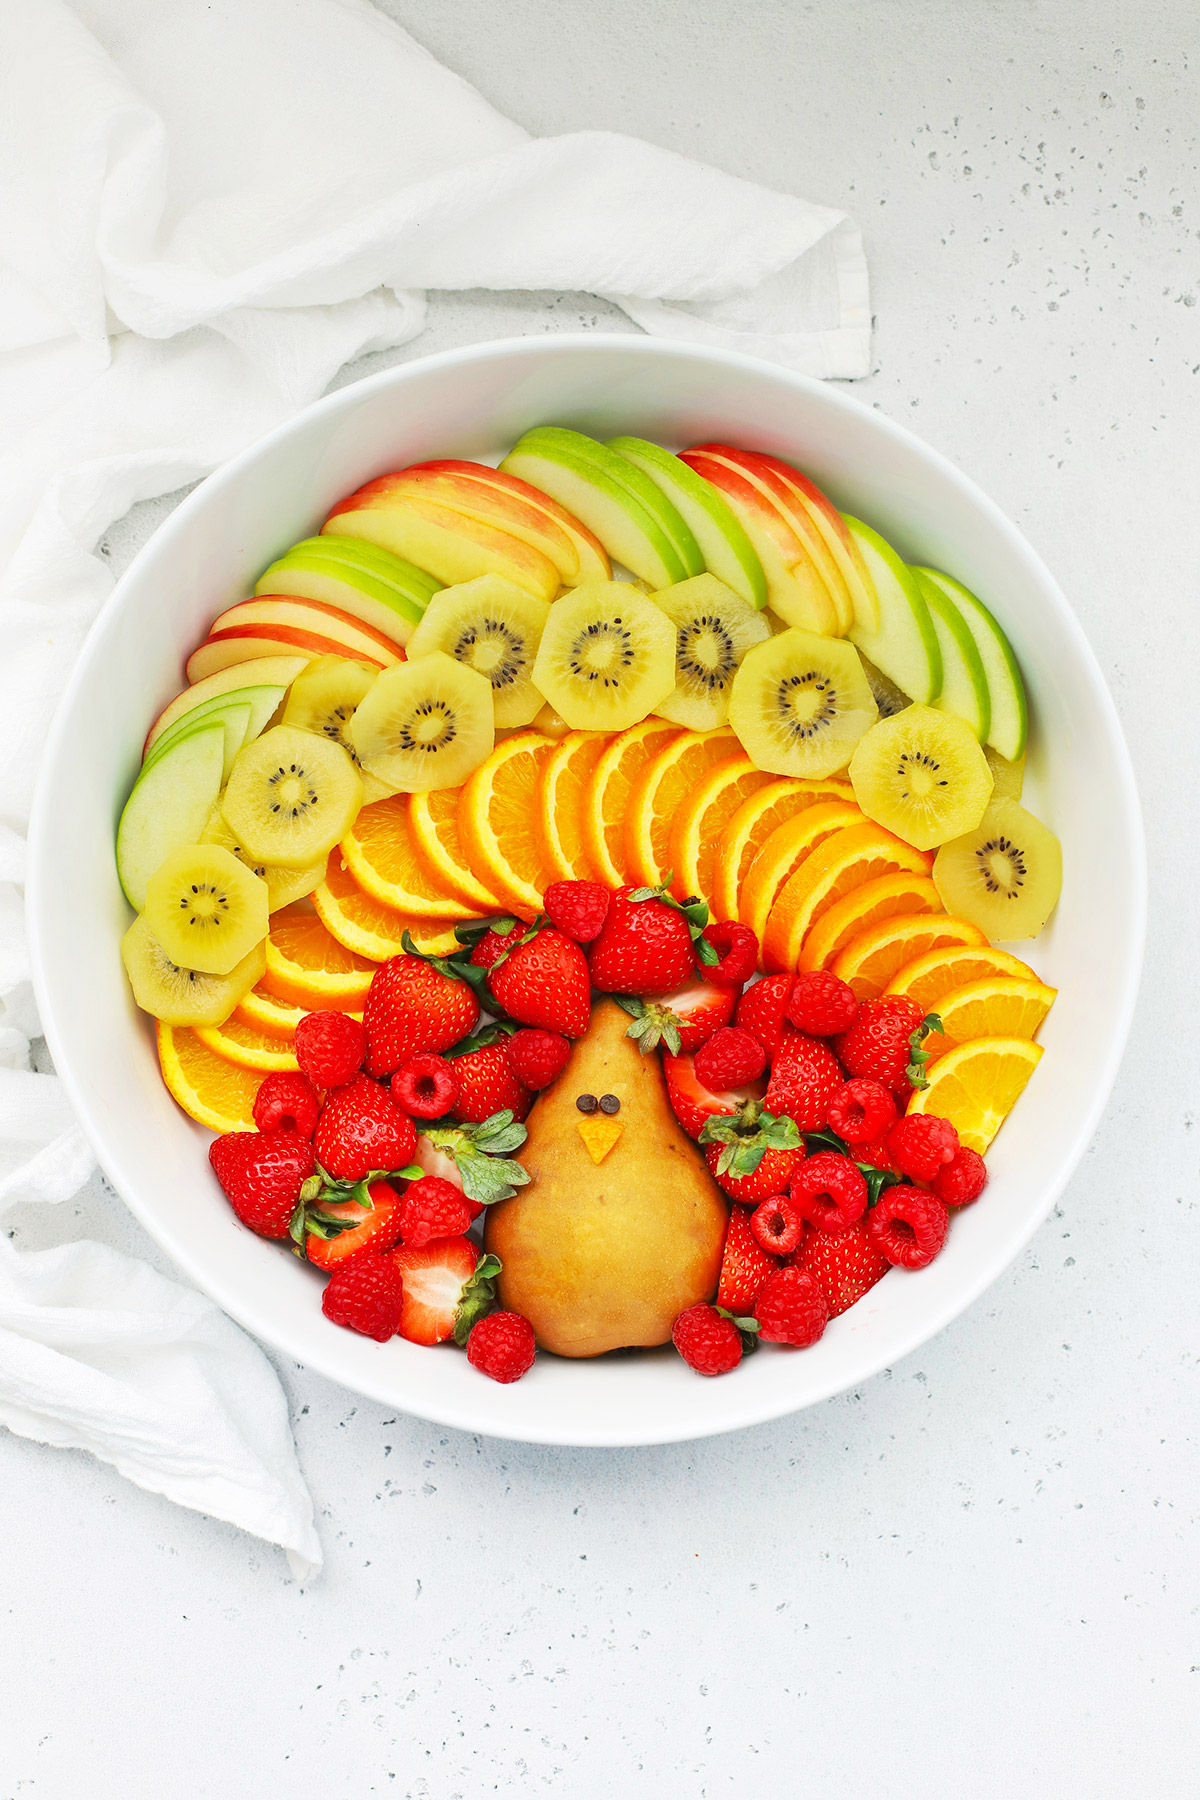 Overhead view of a turkey-shaped fruit platter